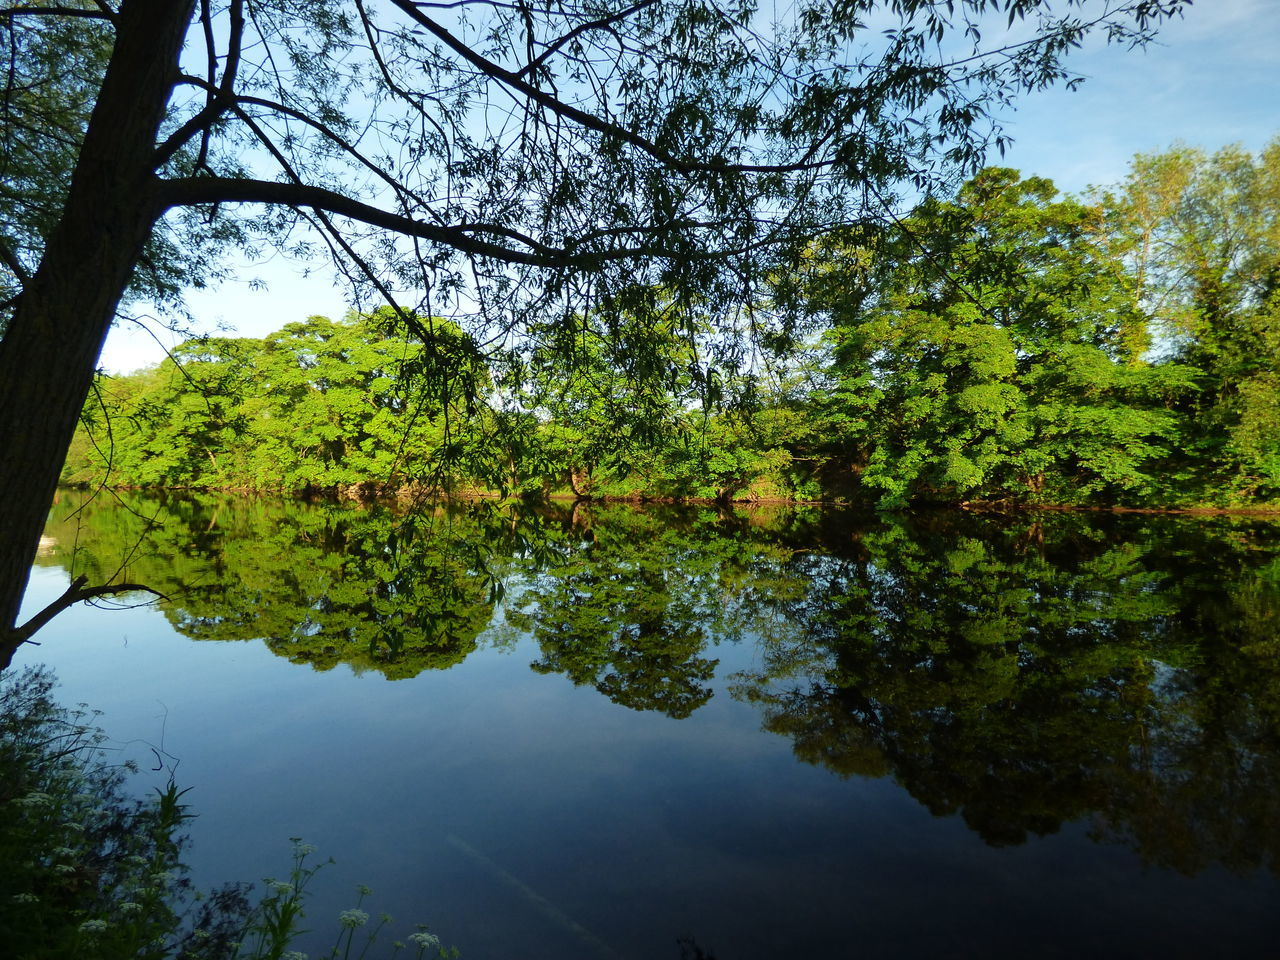 Reflections Reflection Tree Nature Lake Water Day Beauty In Nature Outdoors No People Sky Art Photography Tranquility Popular Photography Low Angle View Scenics Popular Photos Nature Tree Reflection Beauty In Nature